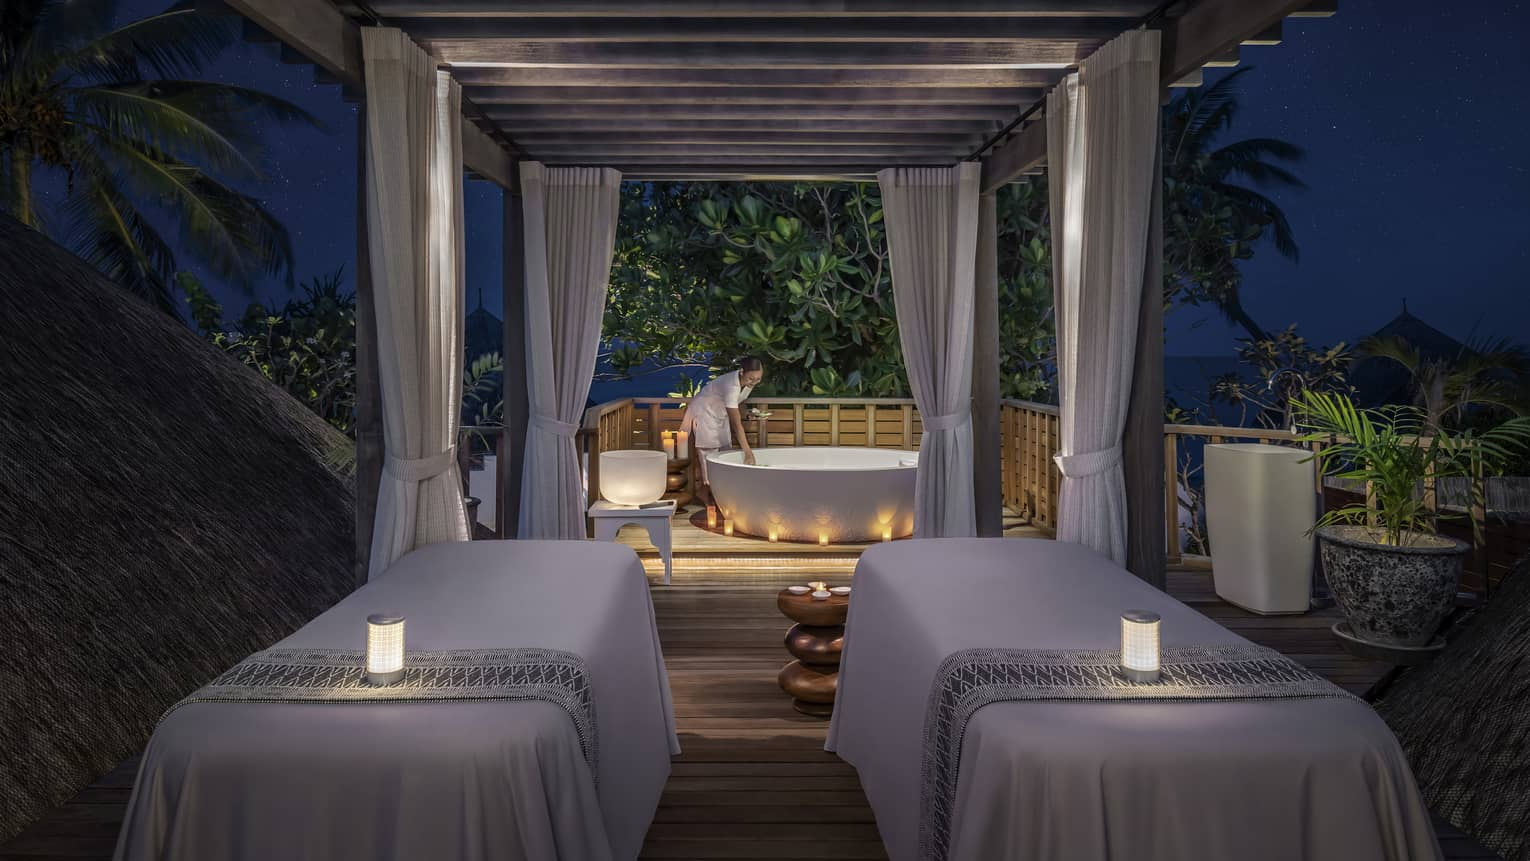 Couples massage beds with glowing candles at outdoor spa pavillion at night